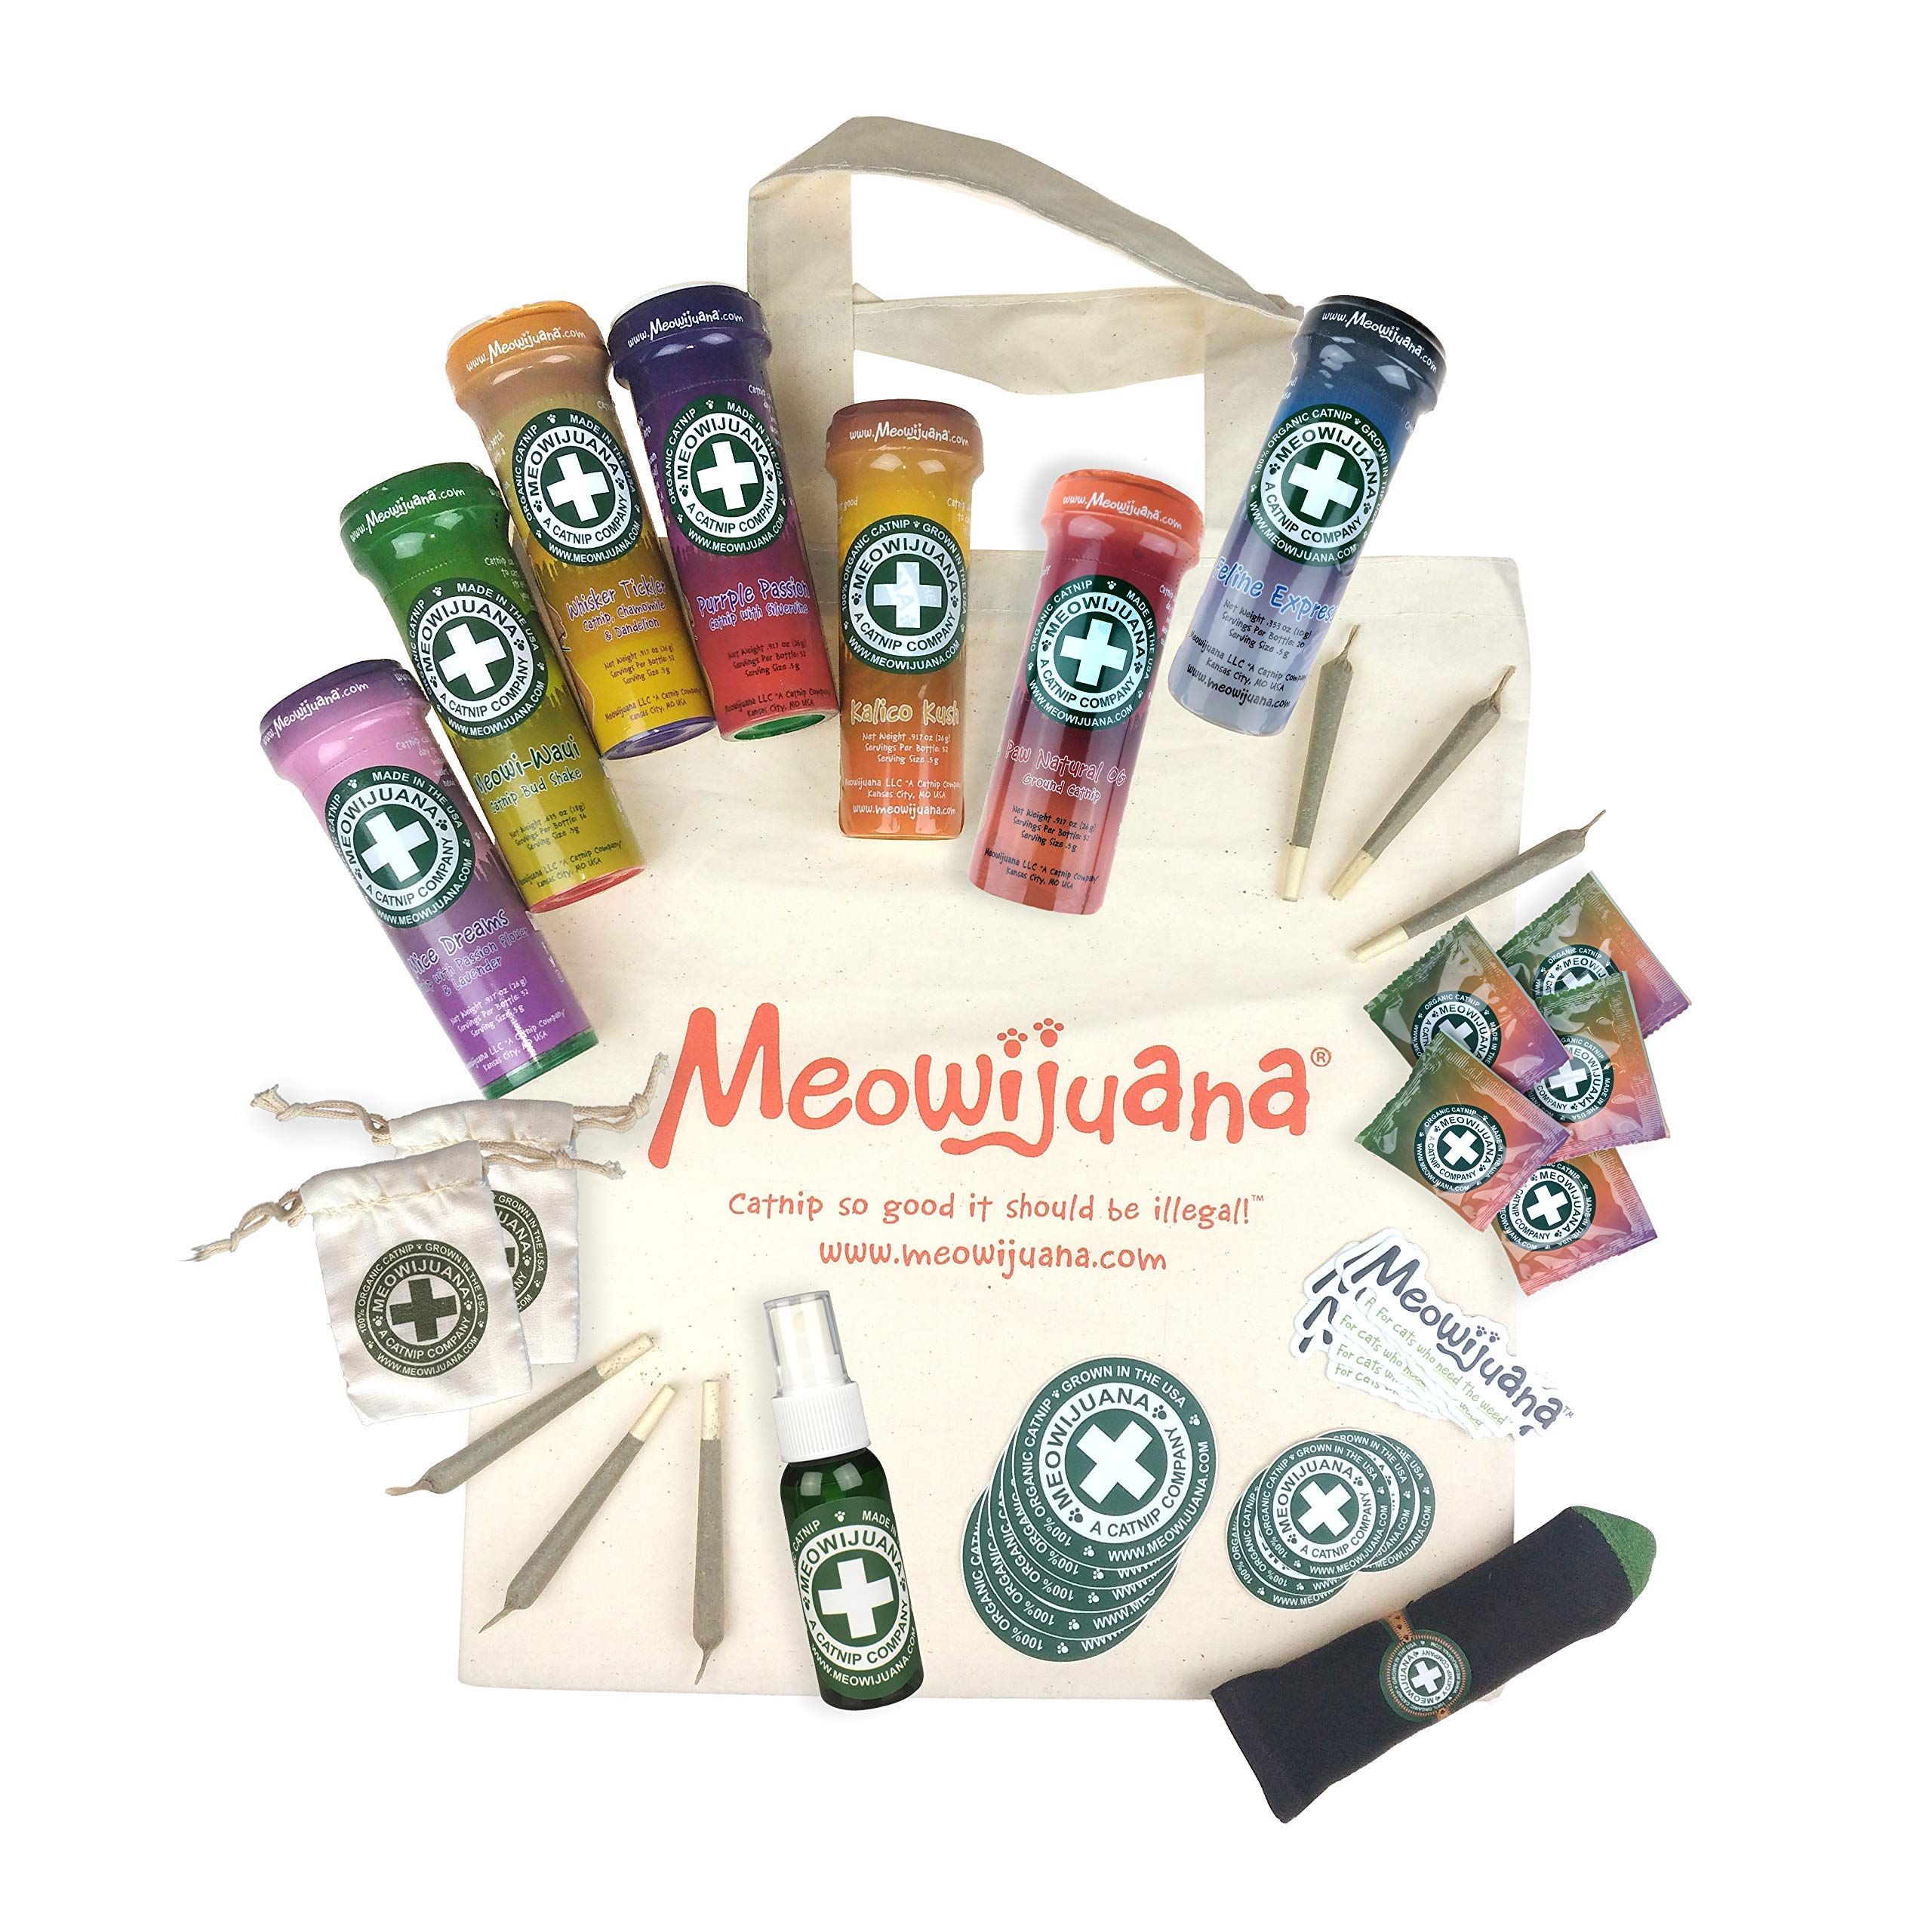 Meowijuana Catnip Collection, USA Grown, Feline Approved, Infused with Maximum Potency Your Kitty is Guaranteed to go Crazy for! Great Gift for Cat Lovers! by Meowijuana